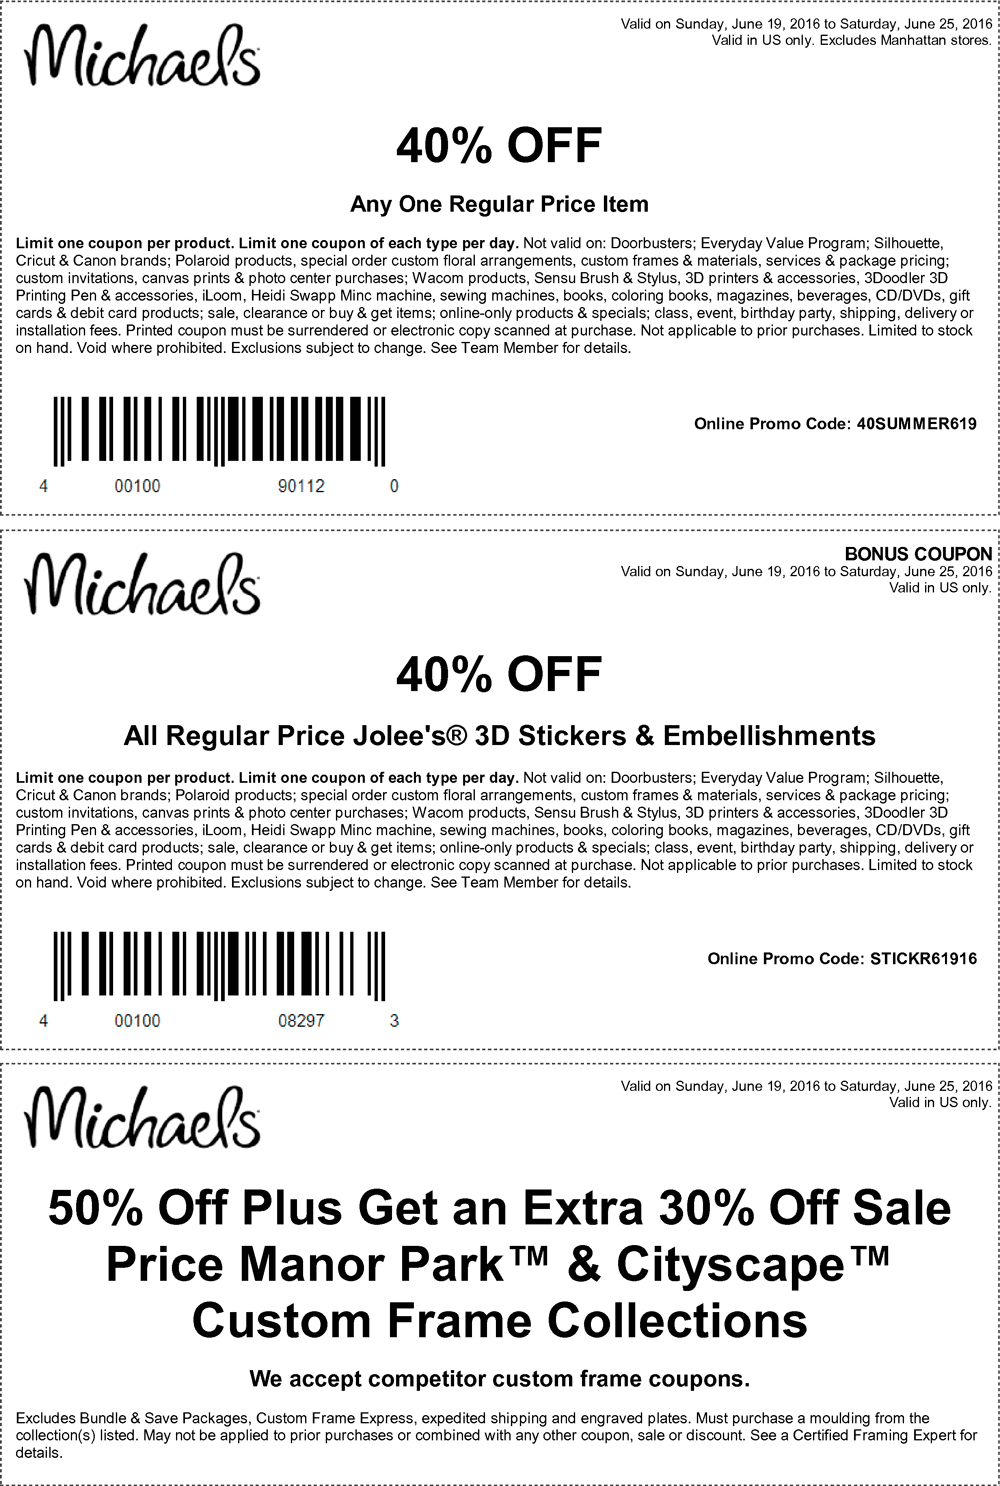 Michaels Coupon March 2017 40% off a single item at Michaels, or online via promo code 40SUMMER619